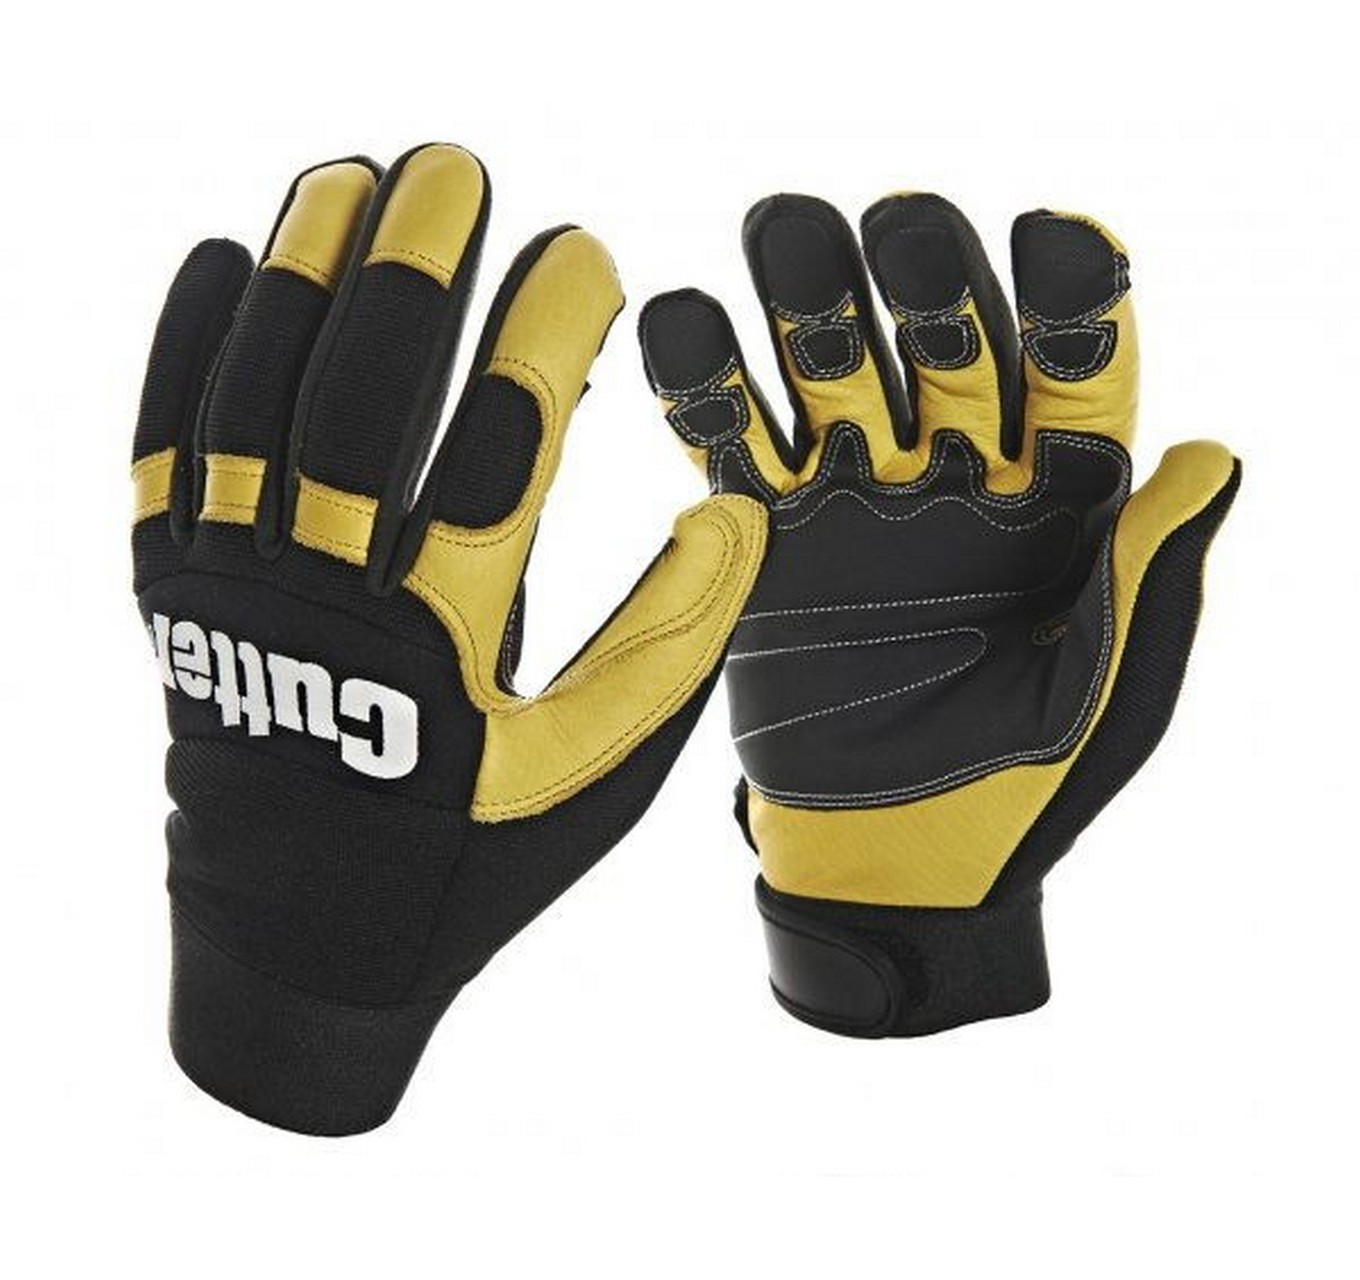 Ultimate Utility Glove S